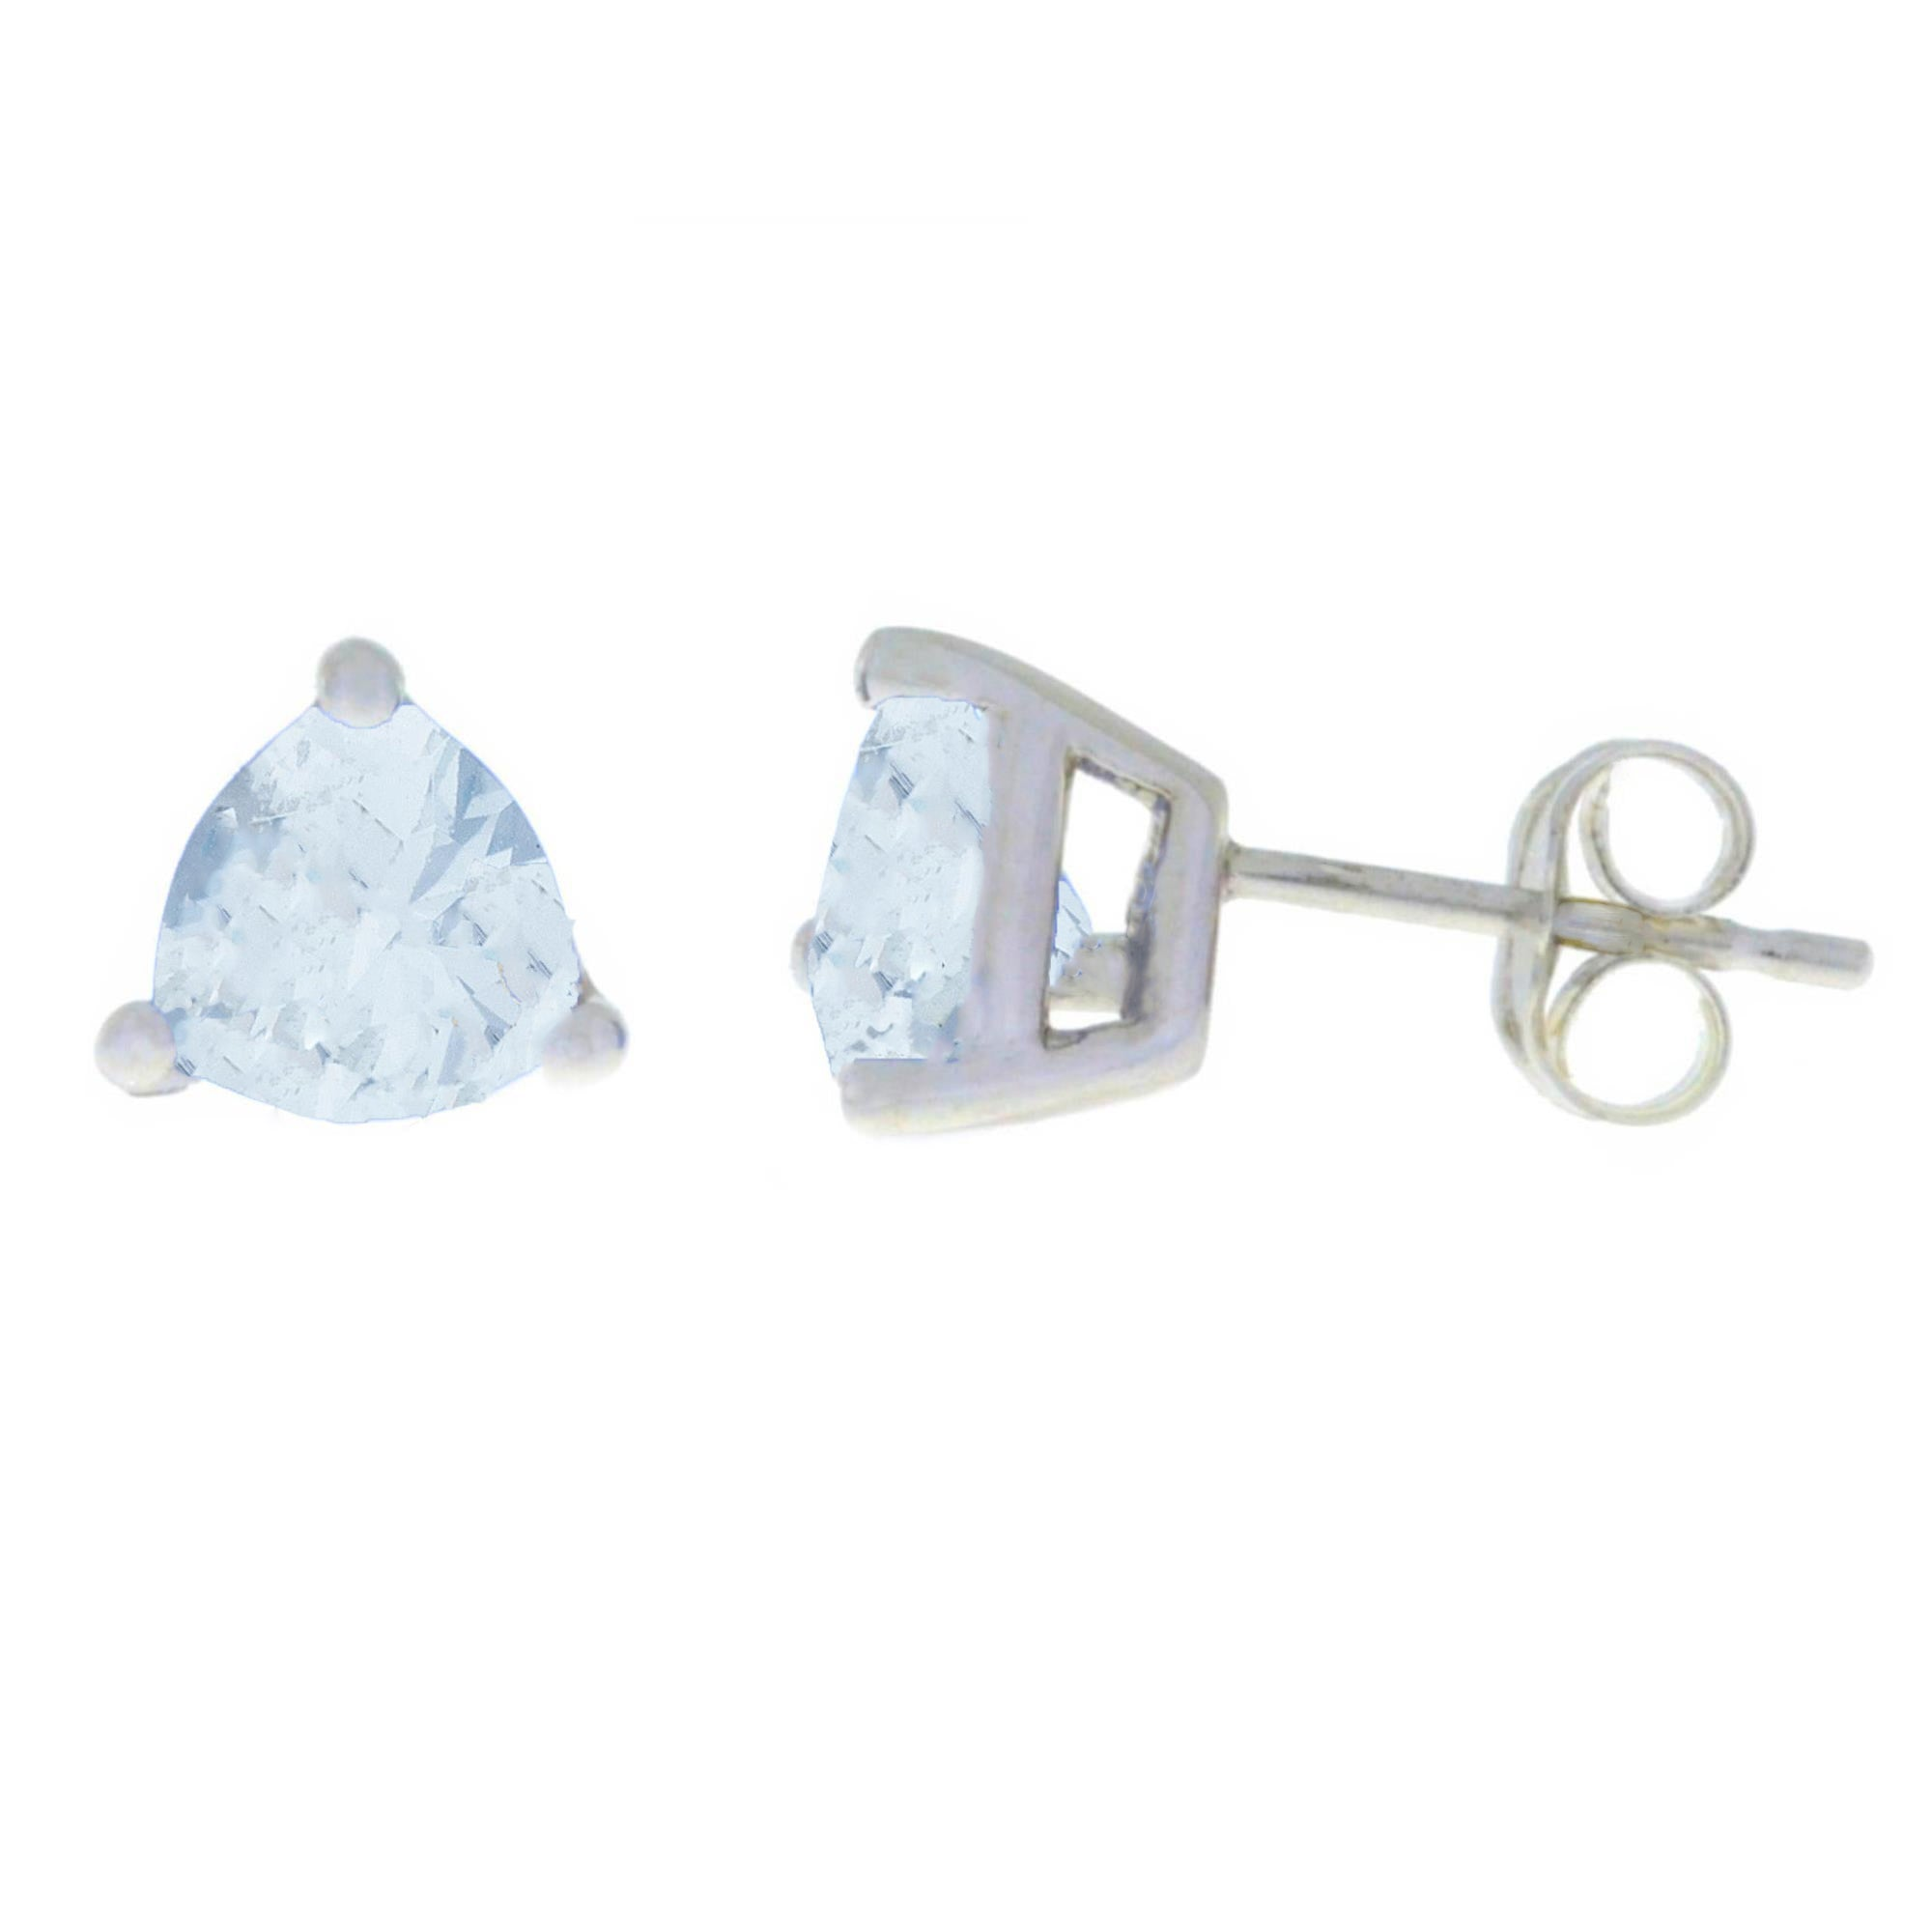 2 Ct Genuine Aquamarine Trillion Stud Earrings .925 Sterling Silver